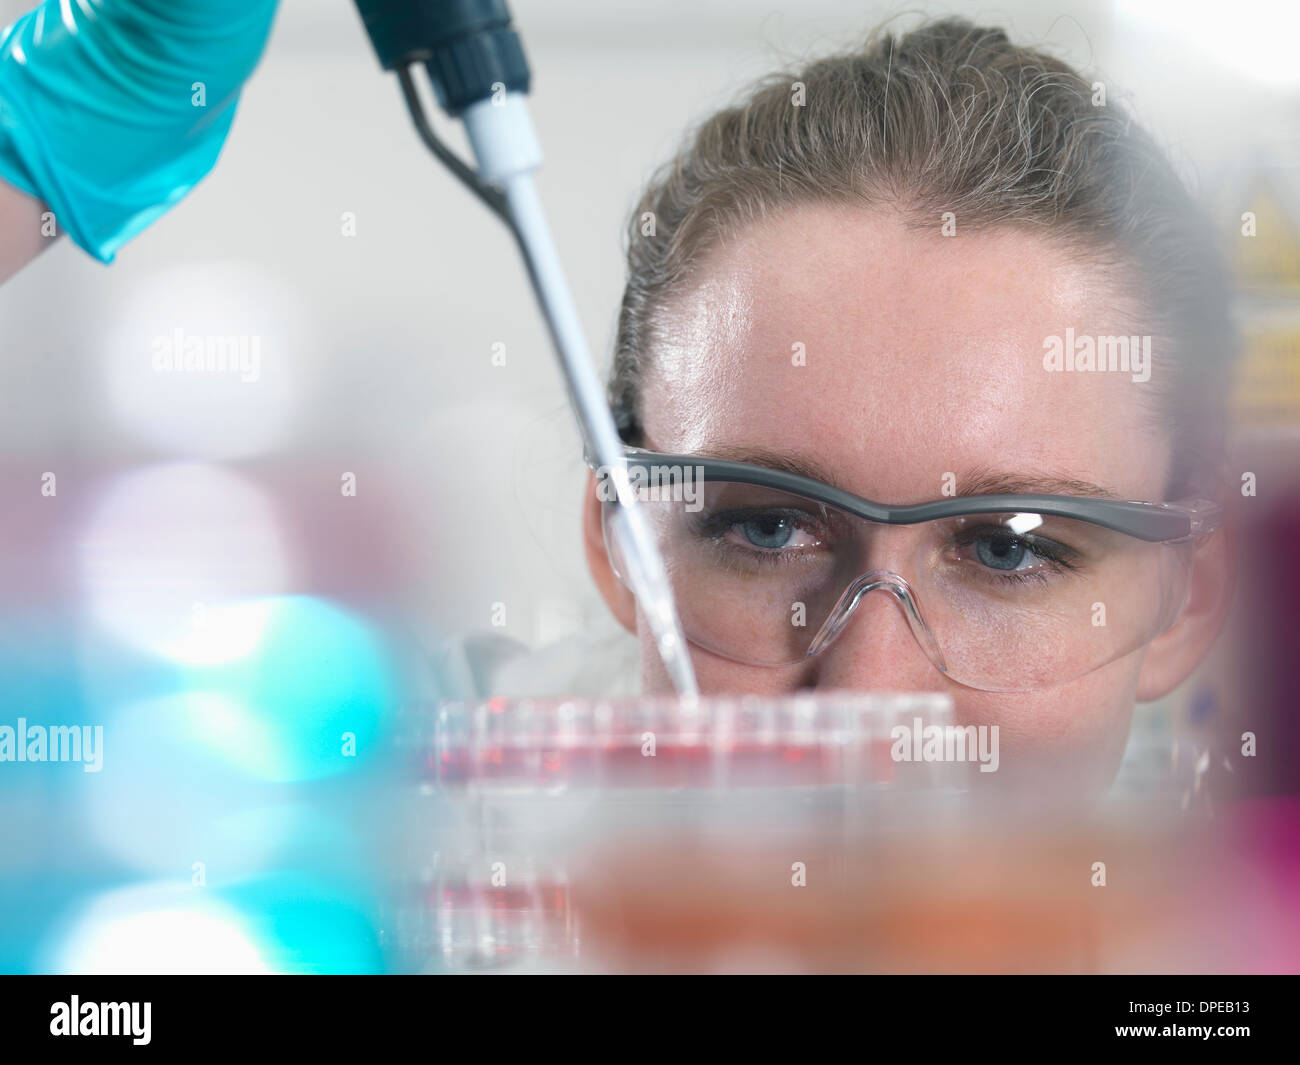 Scientist pipetting stem cell cultures into tray for pharmaceutical research - Stock Image